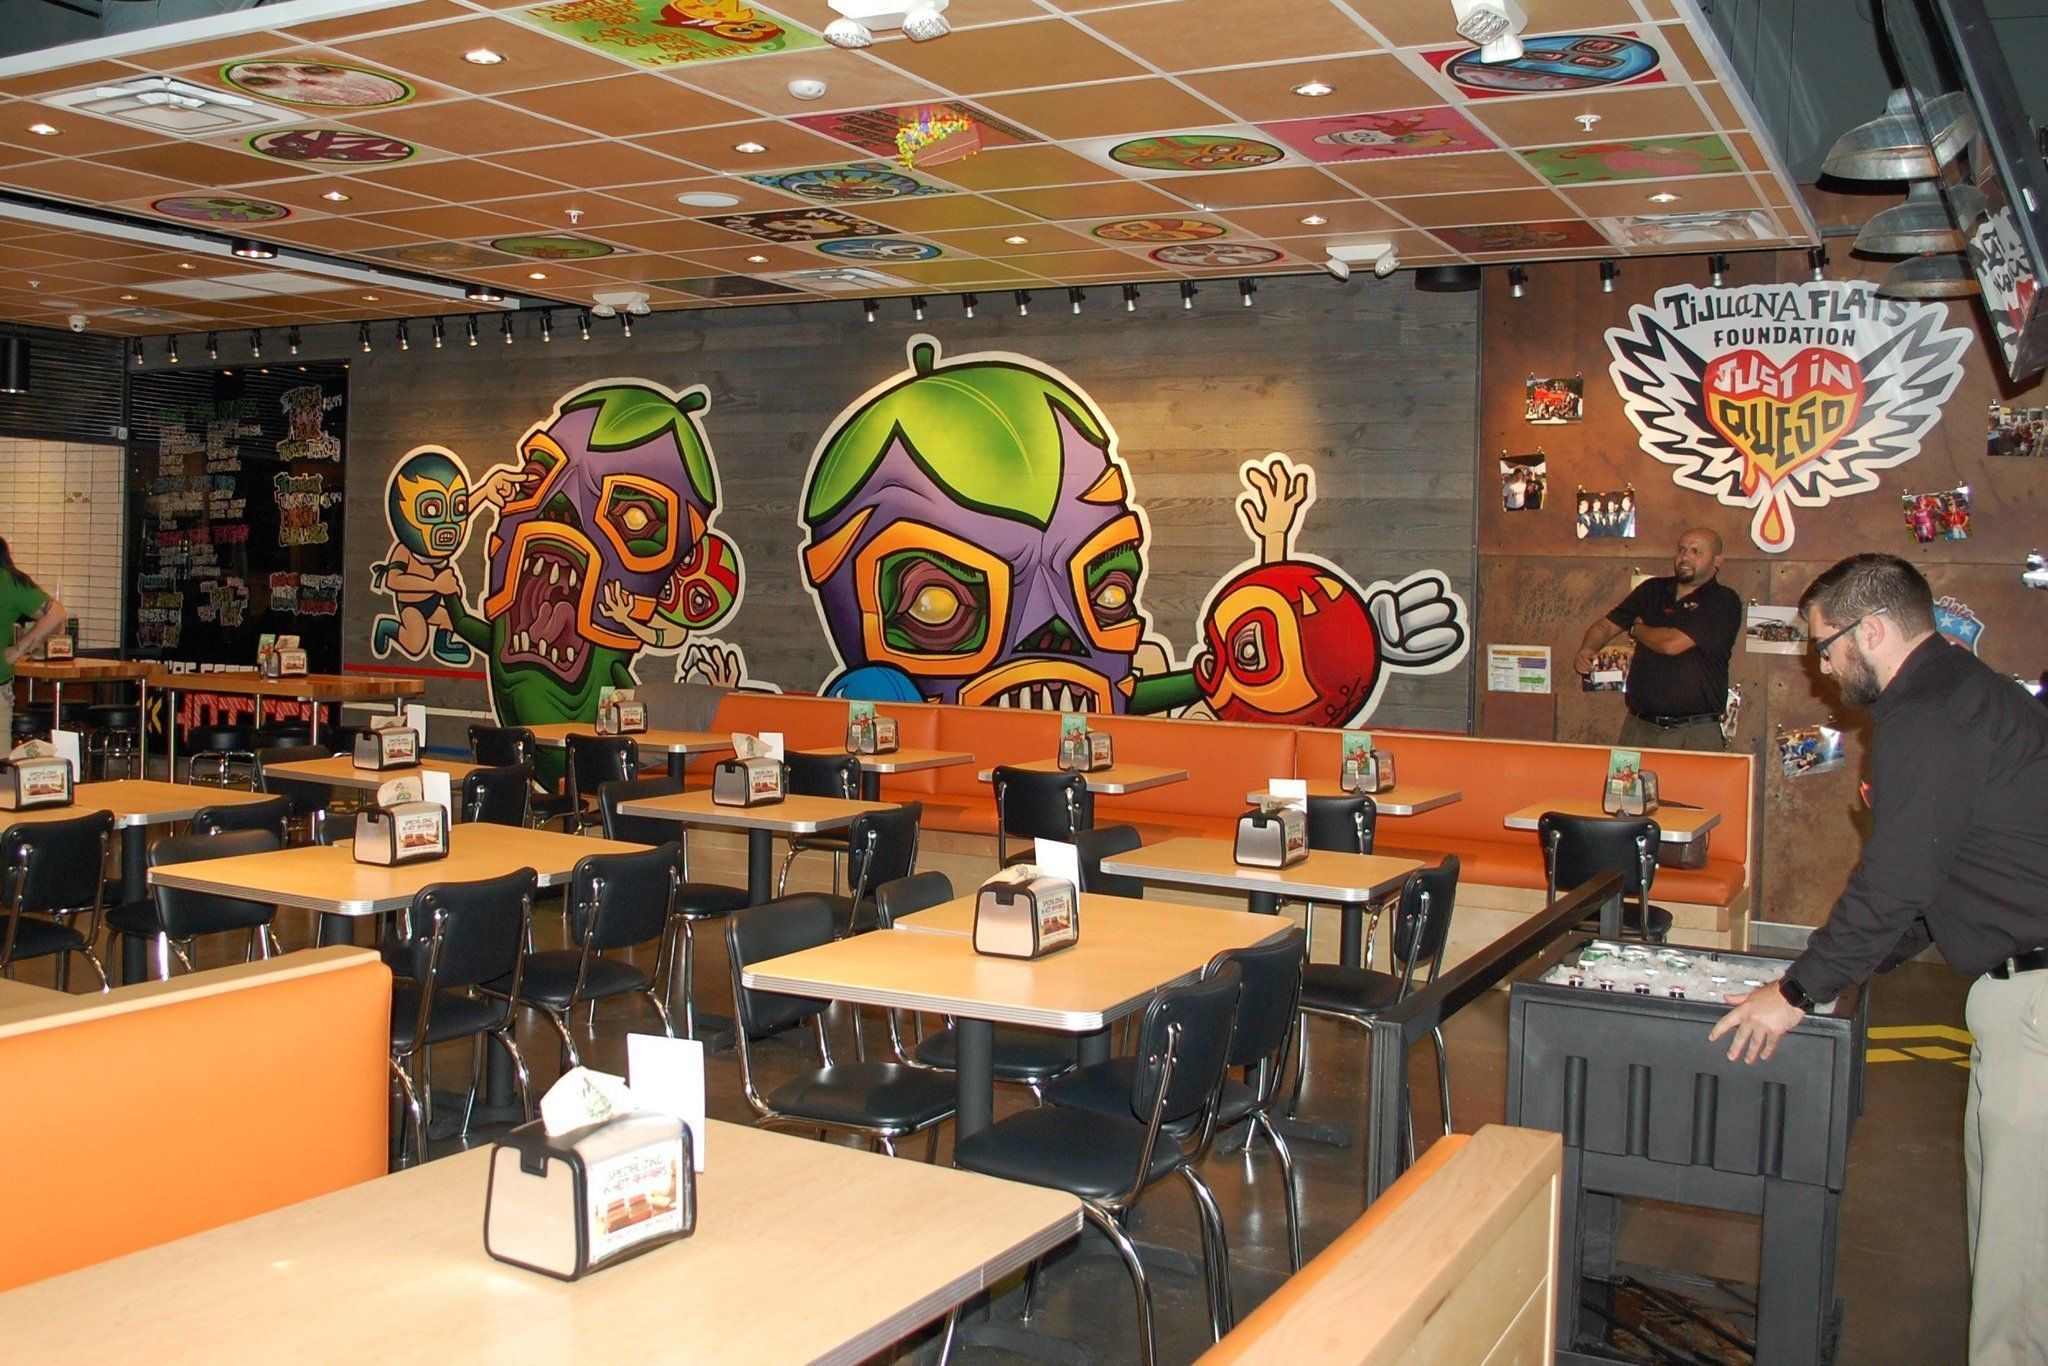 Tijuana Flats Expanding Faster With New Design Orlando